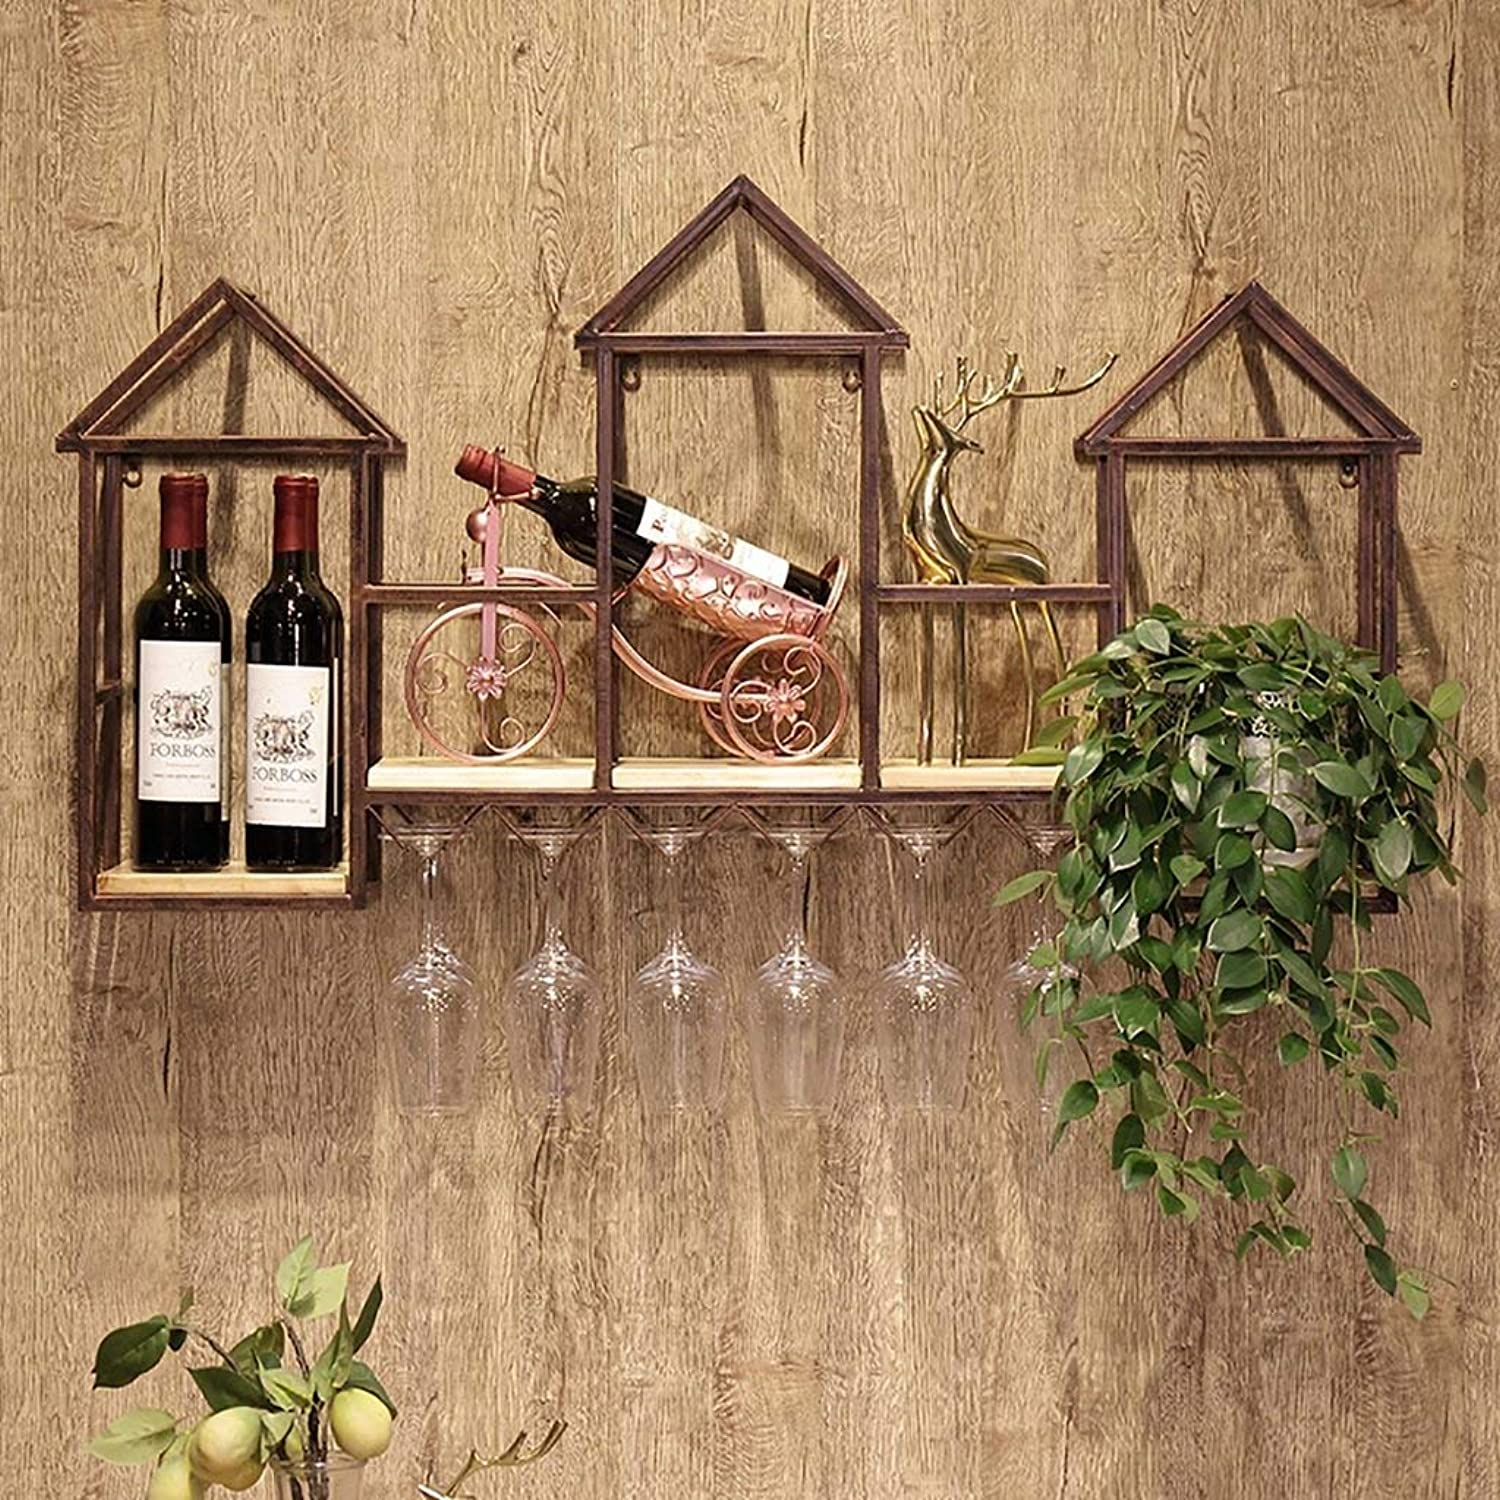 Solid Wood Wall Hanging Wine Rack -110  60  20Cm - Wrought Iron Wall Hanging Restaurant Wine Cabinet Decoration Wine Glass Holder,Save Space,Chrome